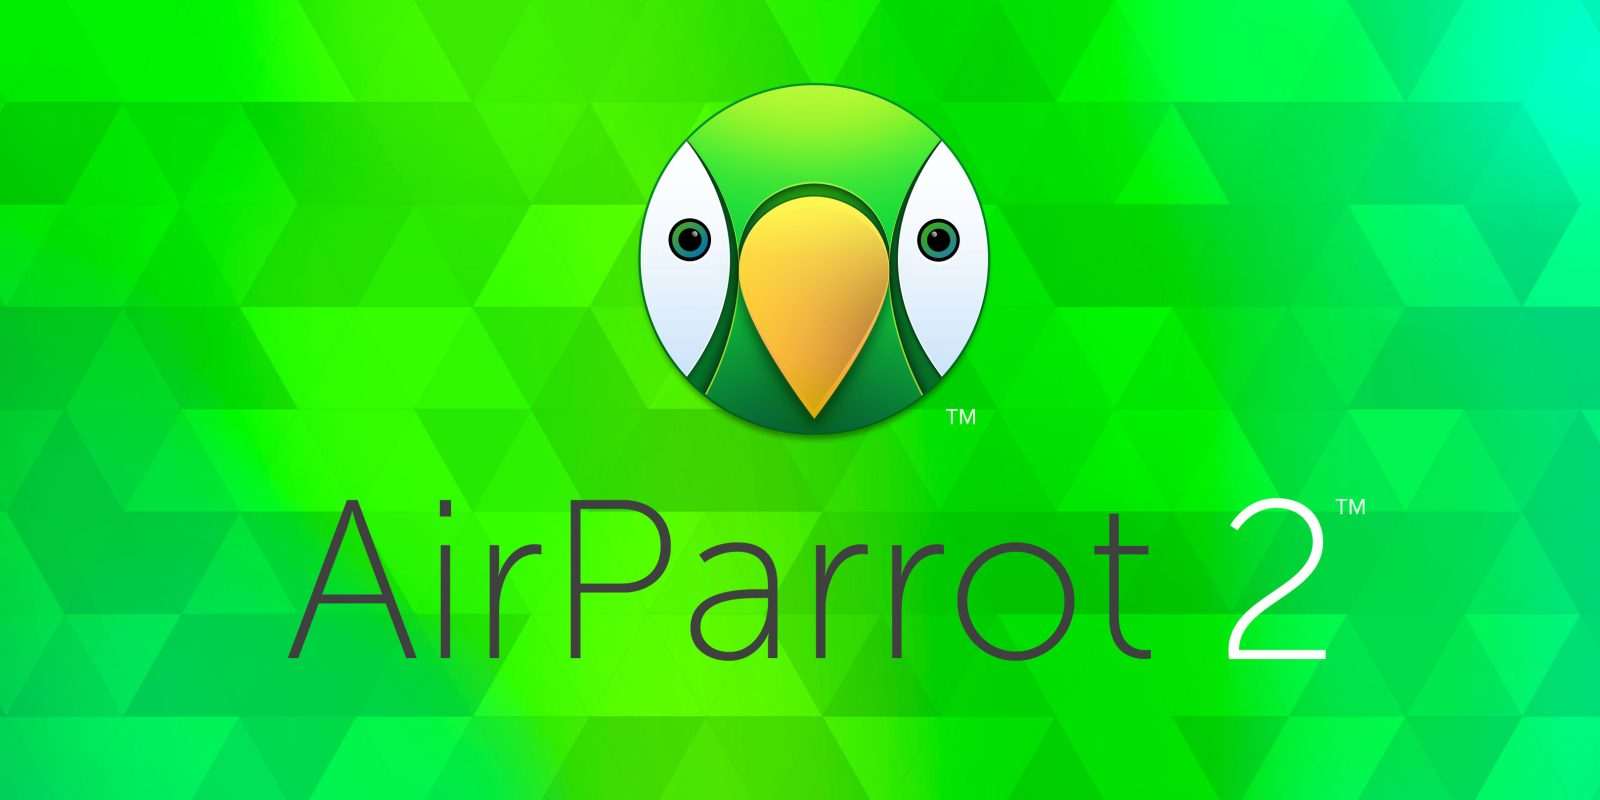 AirParrot 3.1.3 Crack 2021 Full Crack + Activation Code Free For Windows Is Here